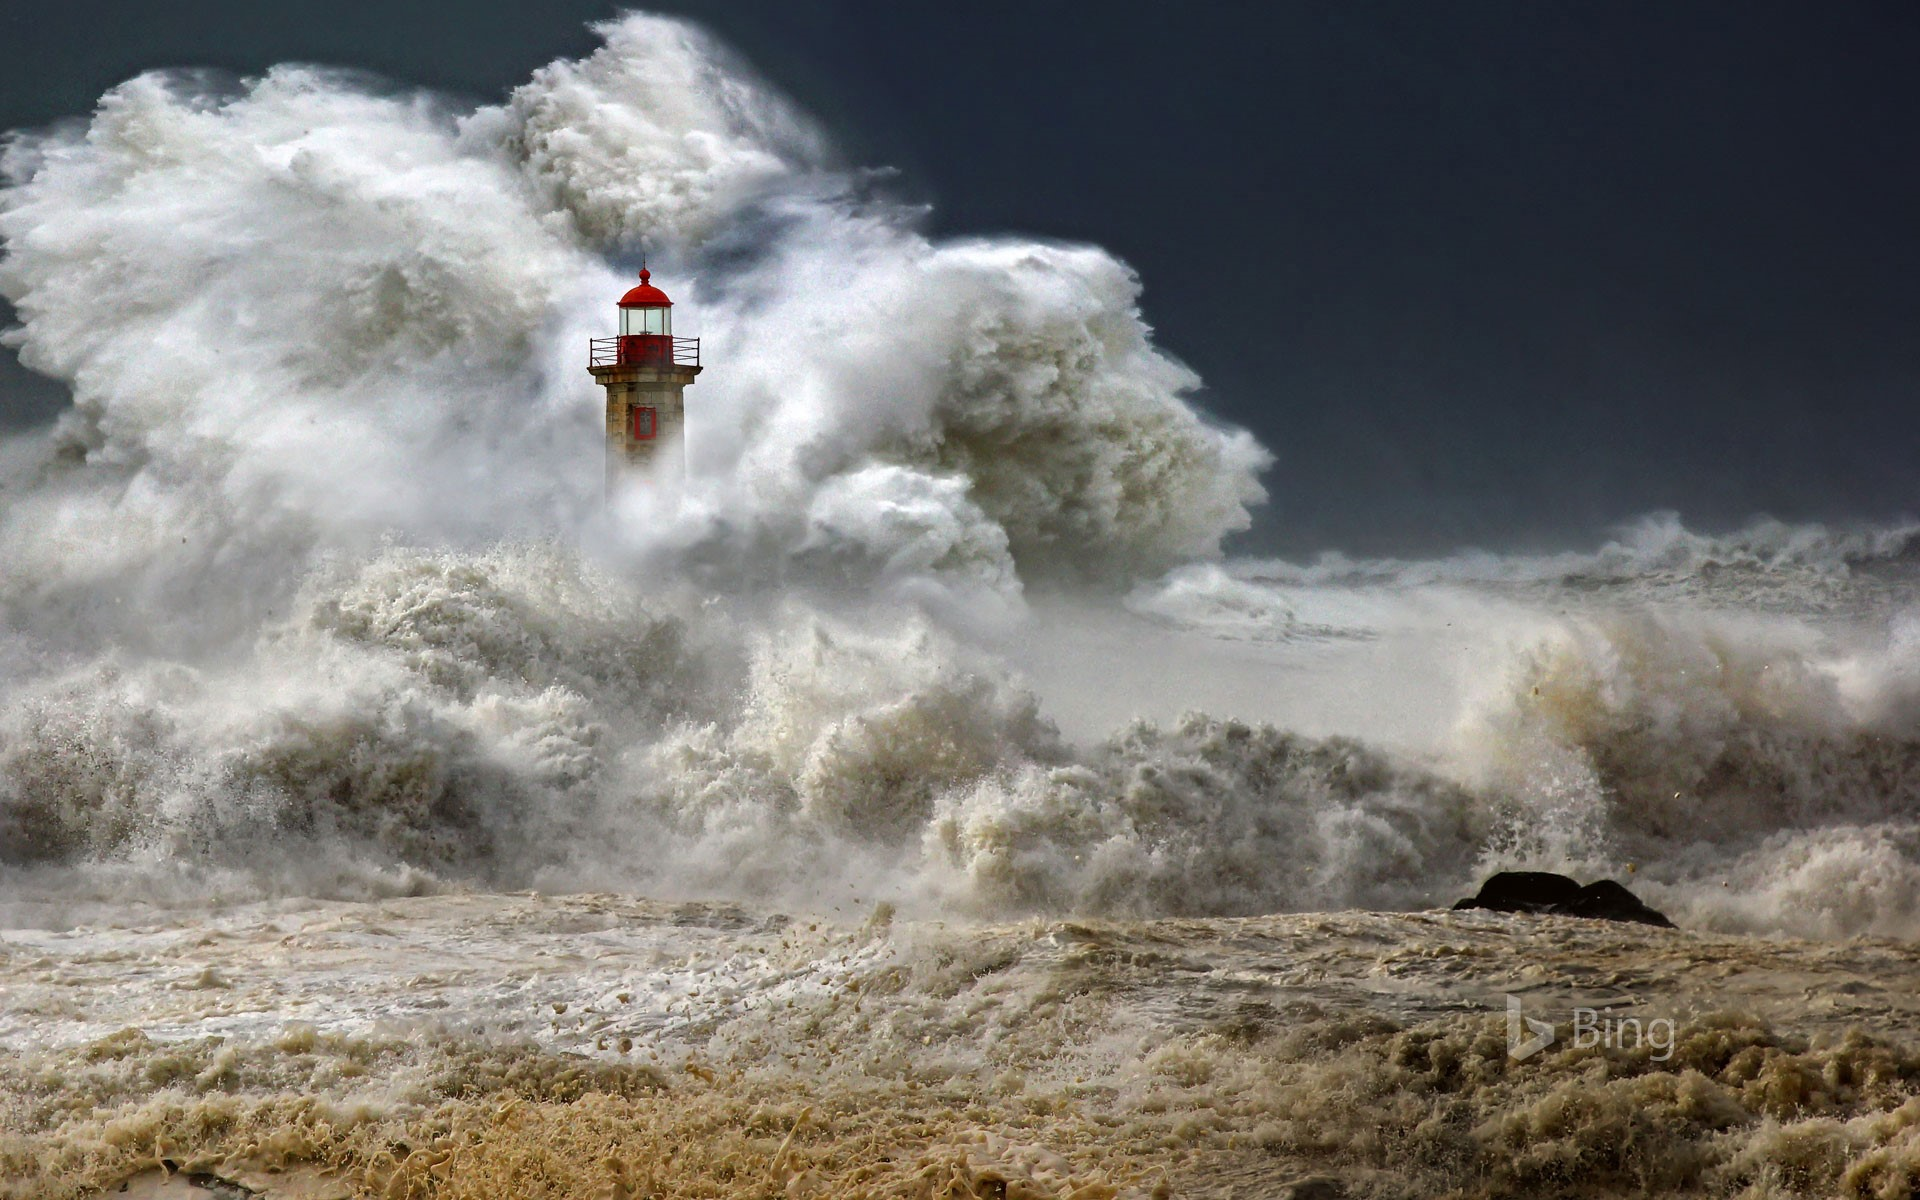 Farolim de Felgueiras, a lighthouse in Porto, Portugal (© Veselin Malinov/500px)